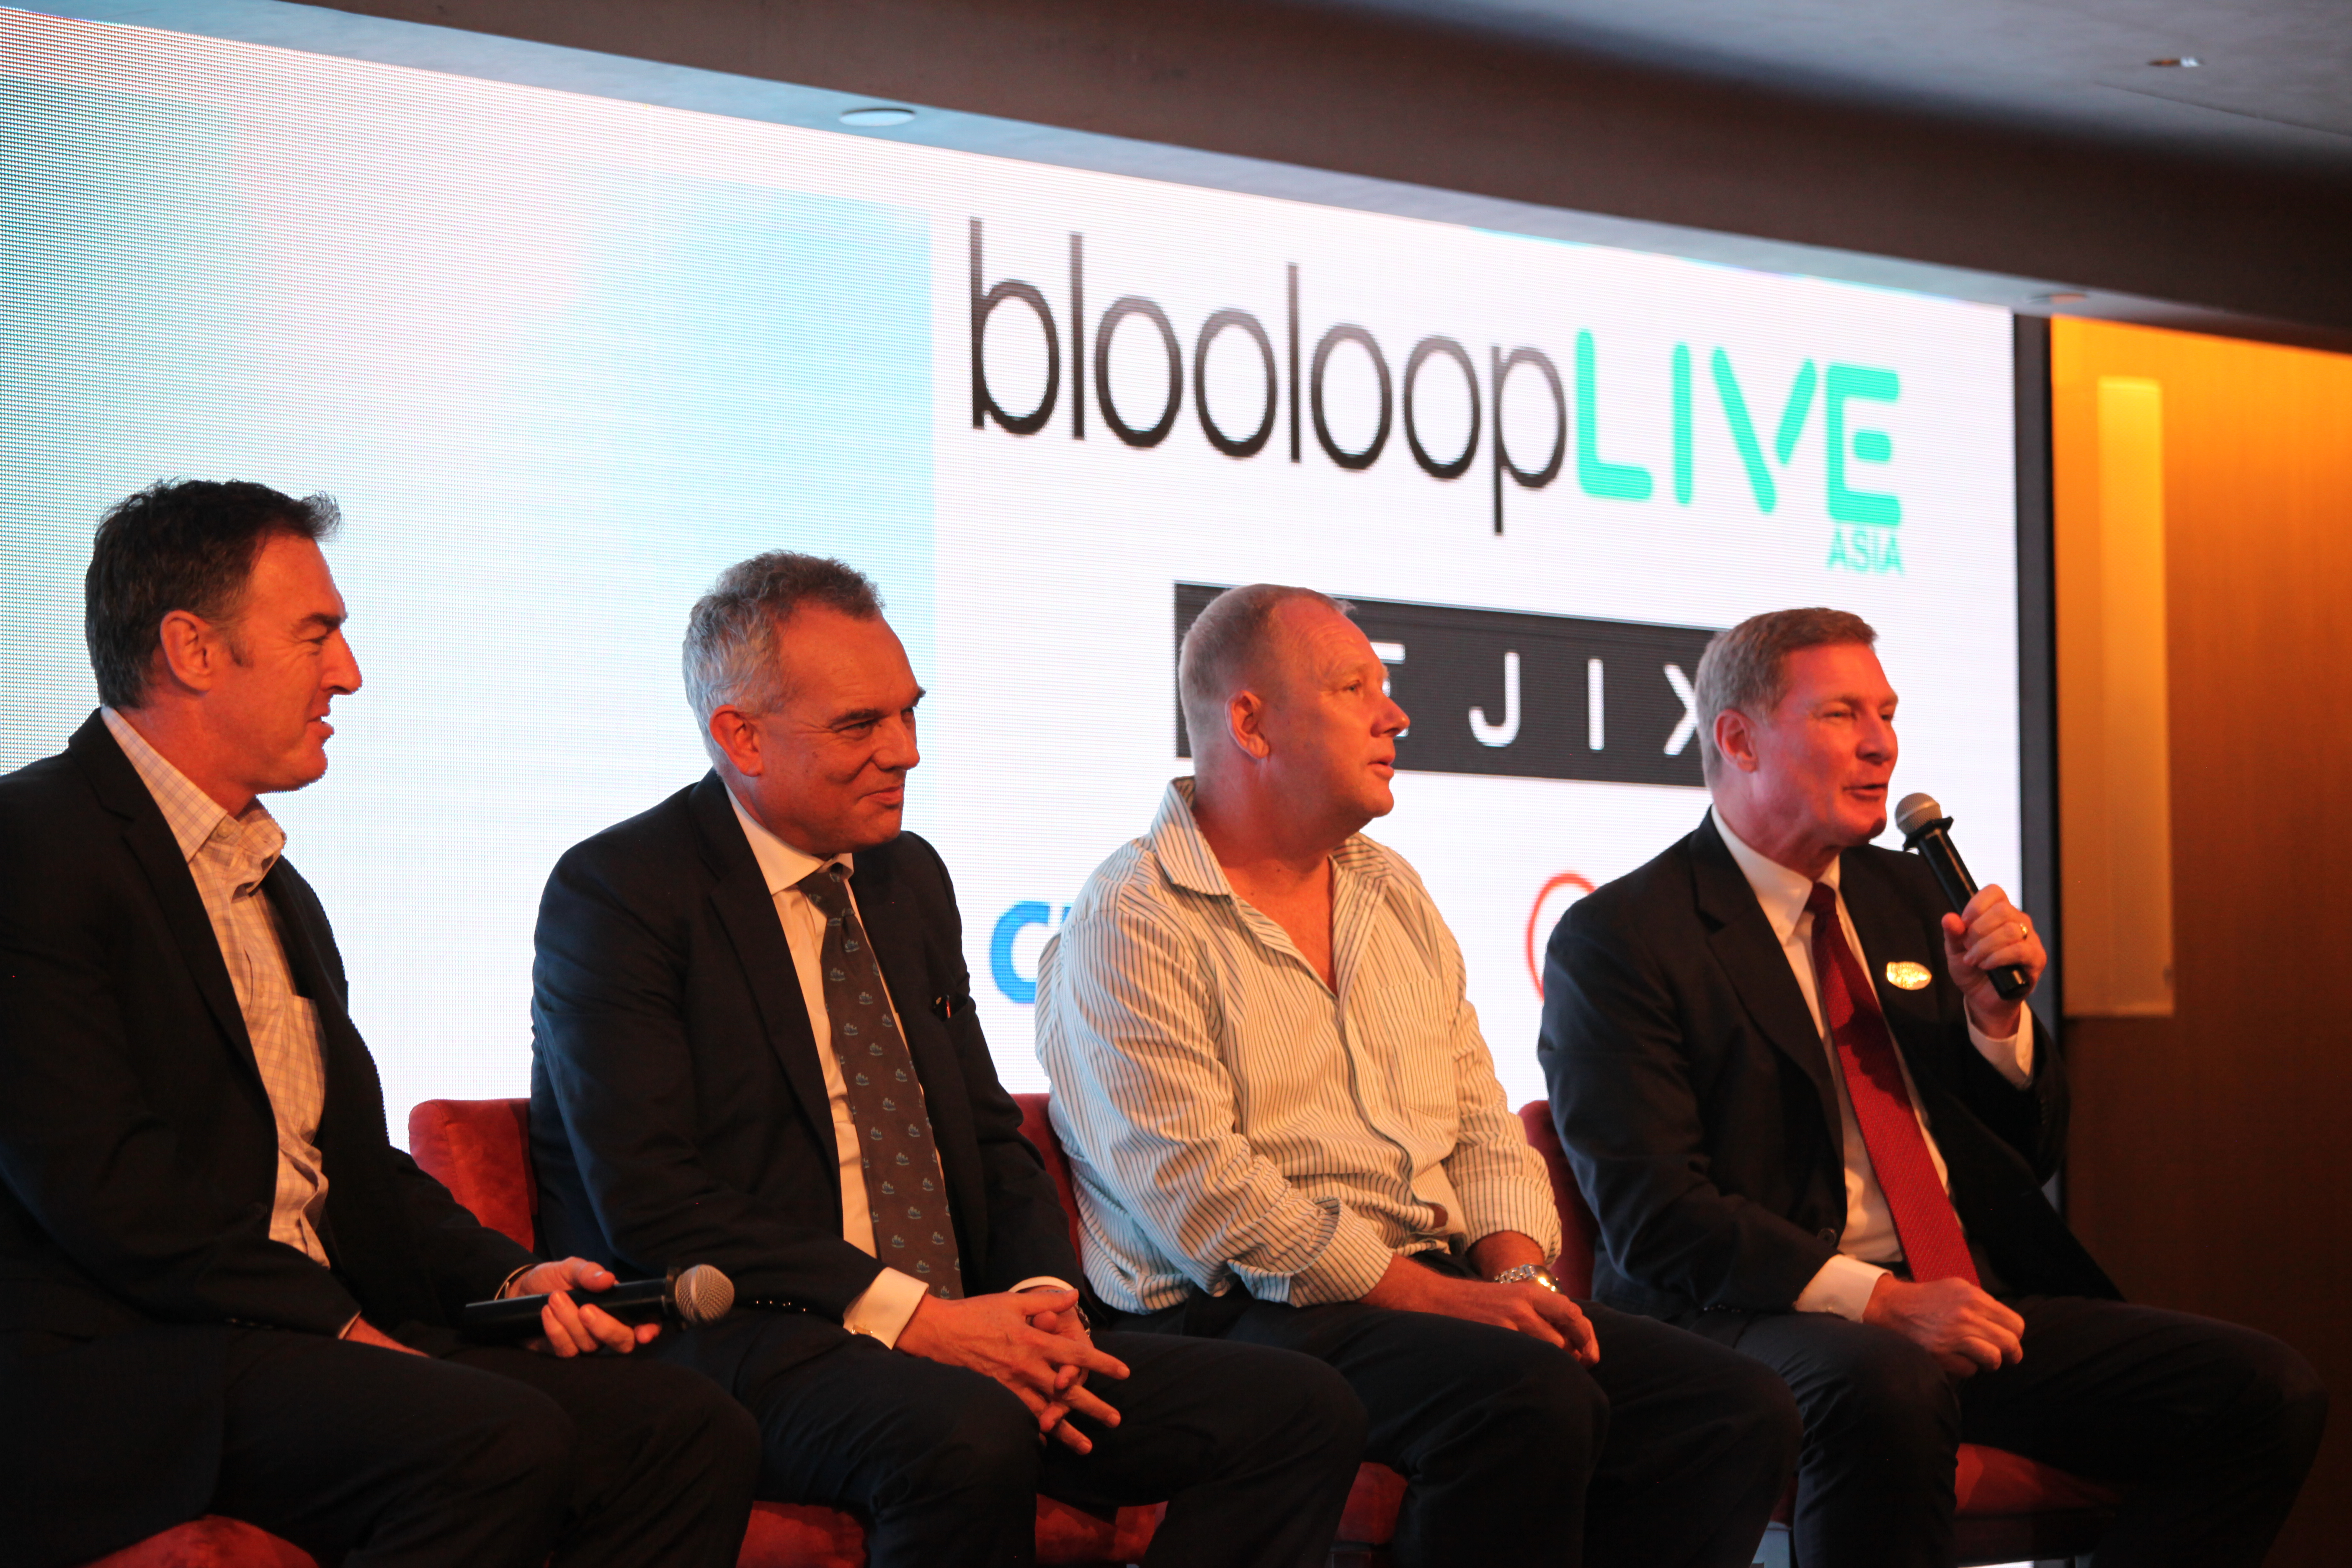 panel-bloolooplive-asia